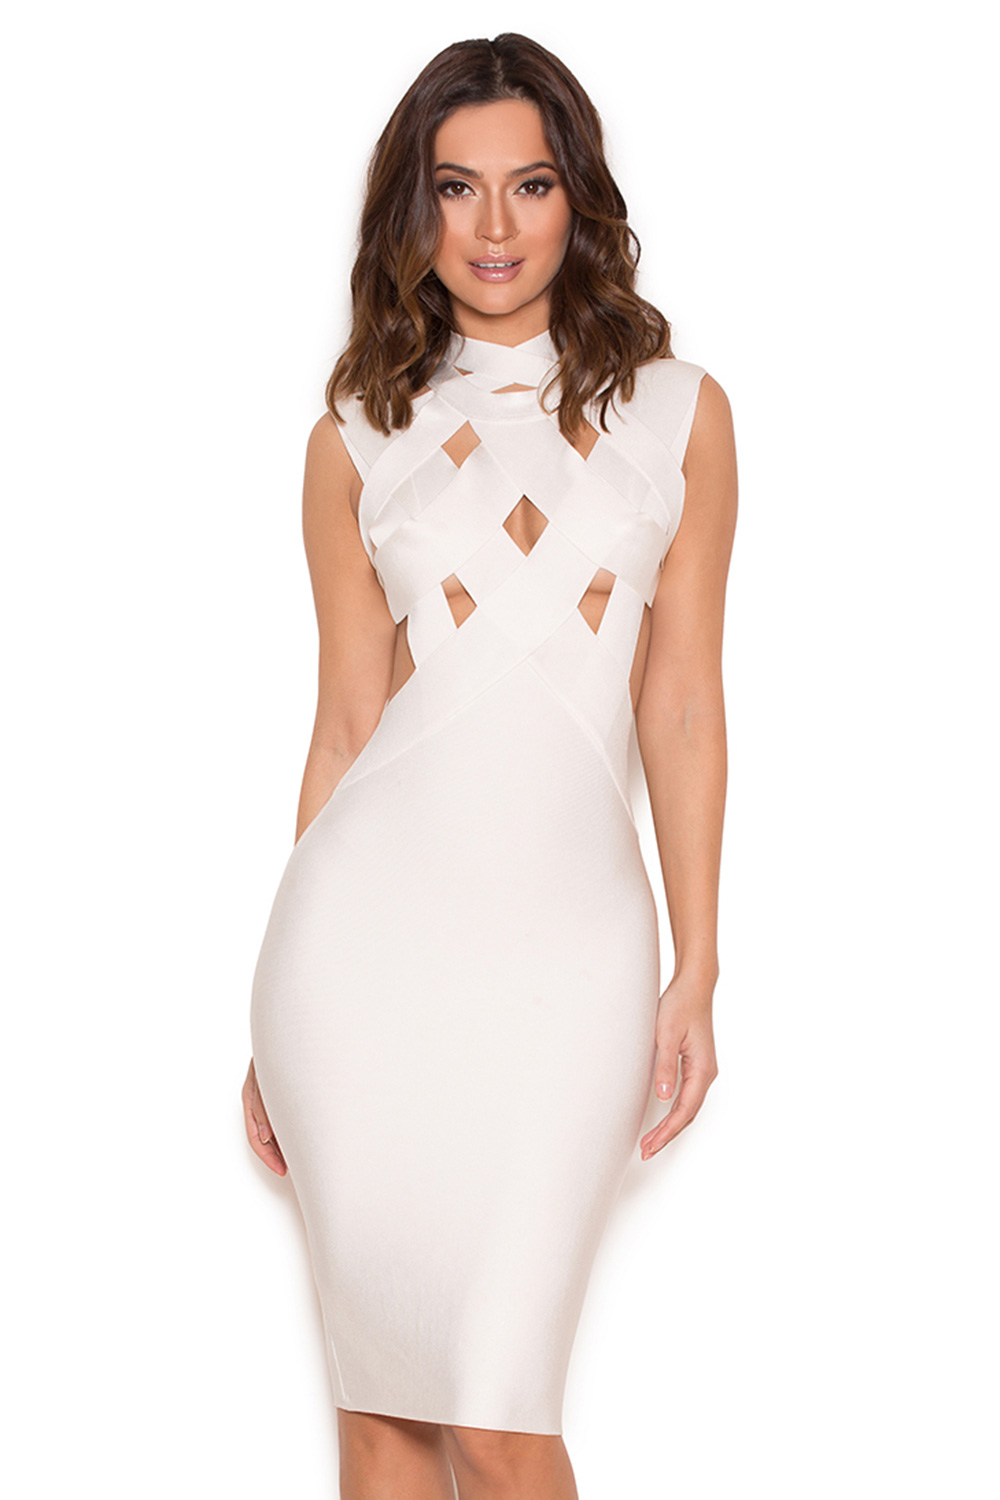 Clothing : Bandage Dresses : 'Simi' White Cut Out Bandage Dress